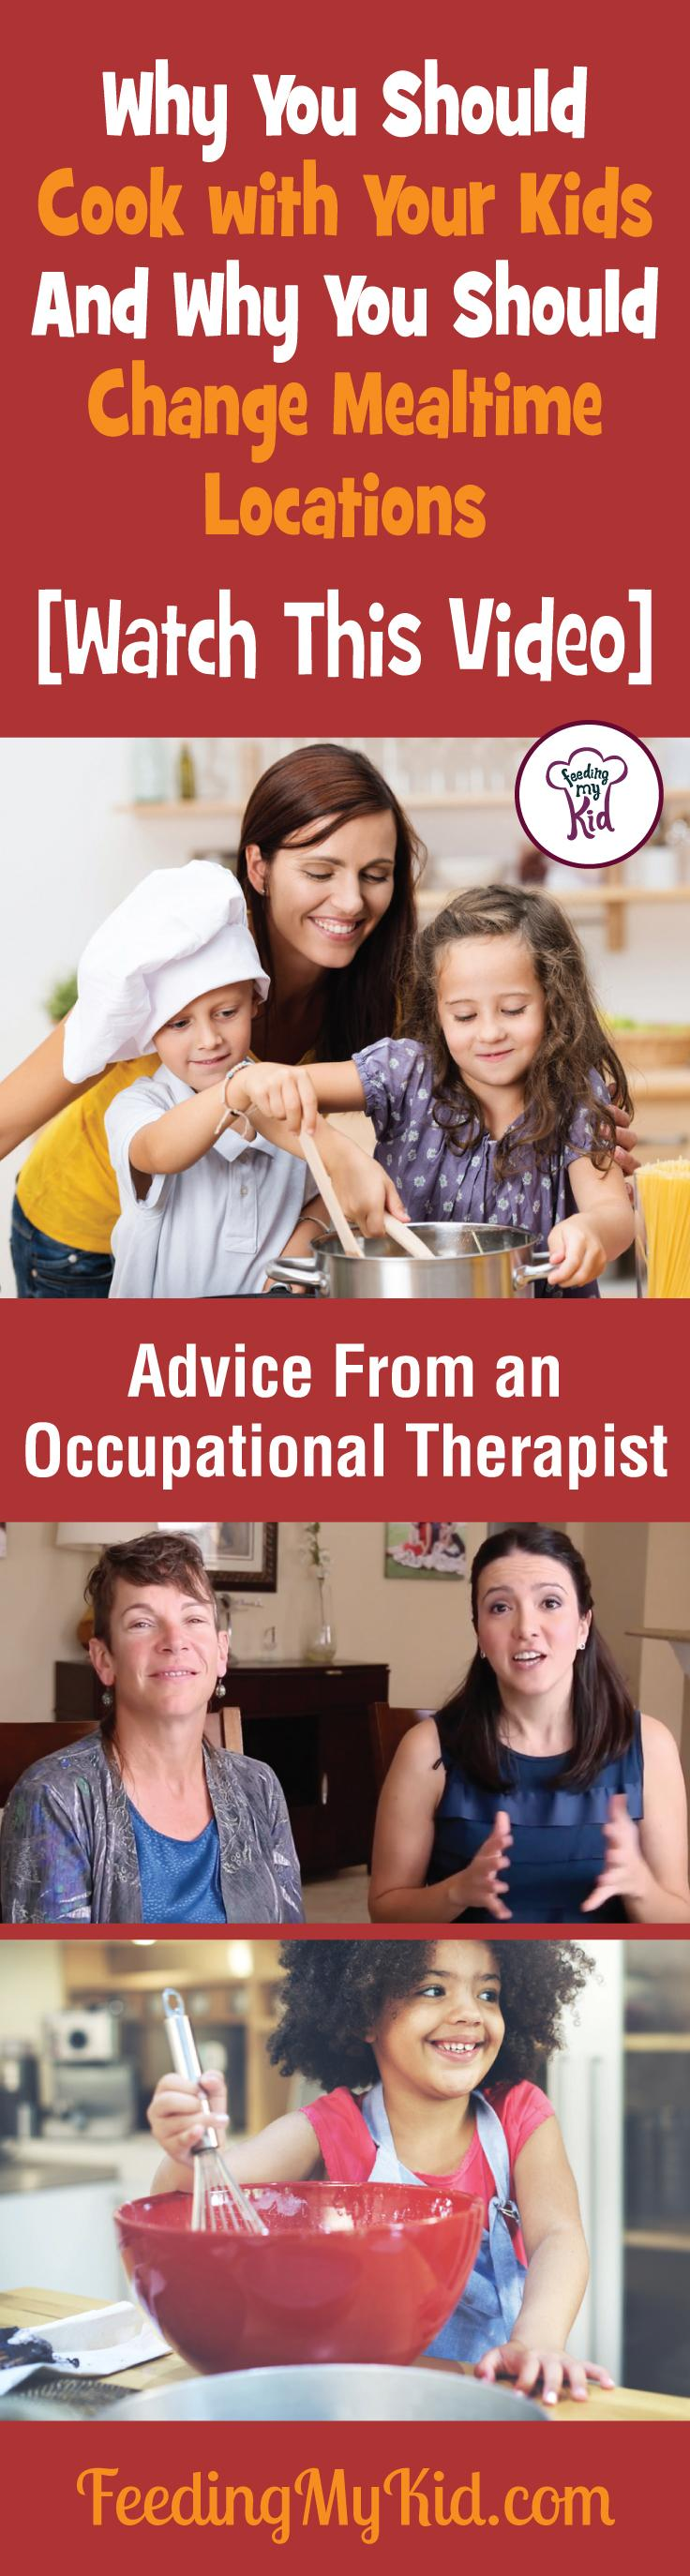 This is a must pin! Find out why you should be cooking with kids. Advice from an occupational therapist. Feeding My Kid is a filled with all the information you need about how to raise your kids, from healthy tips to nutritious recipes. #FeedingMyKid #OccupationalTherapist #advice #kidshealth #cookingwithkids